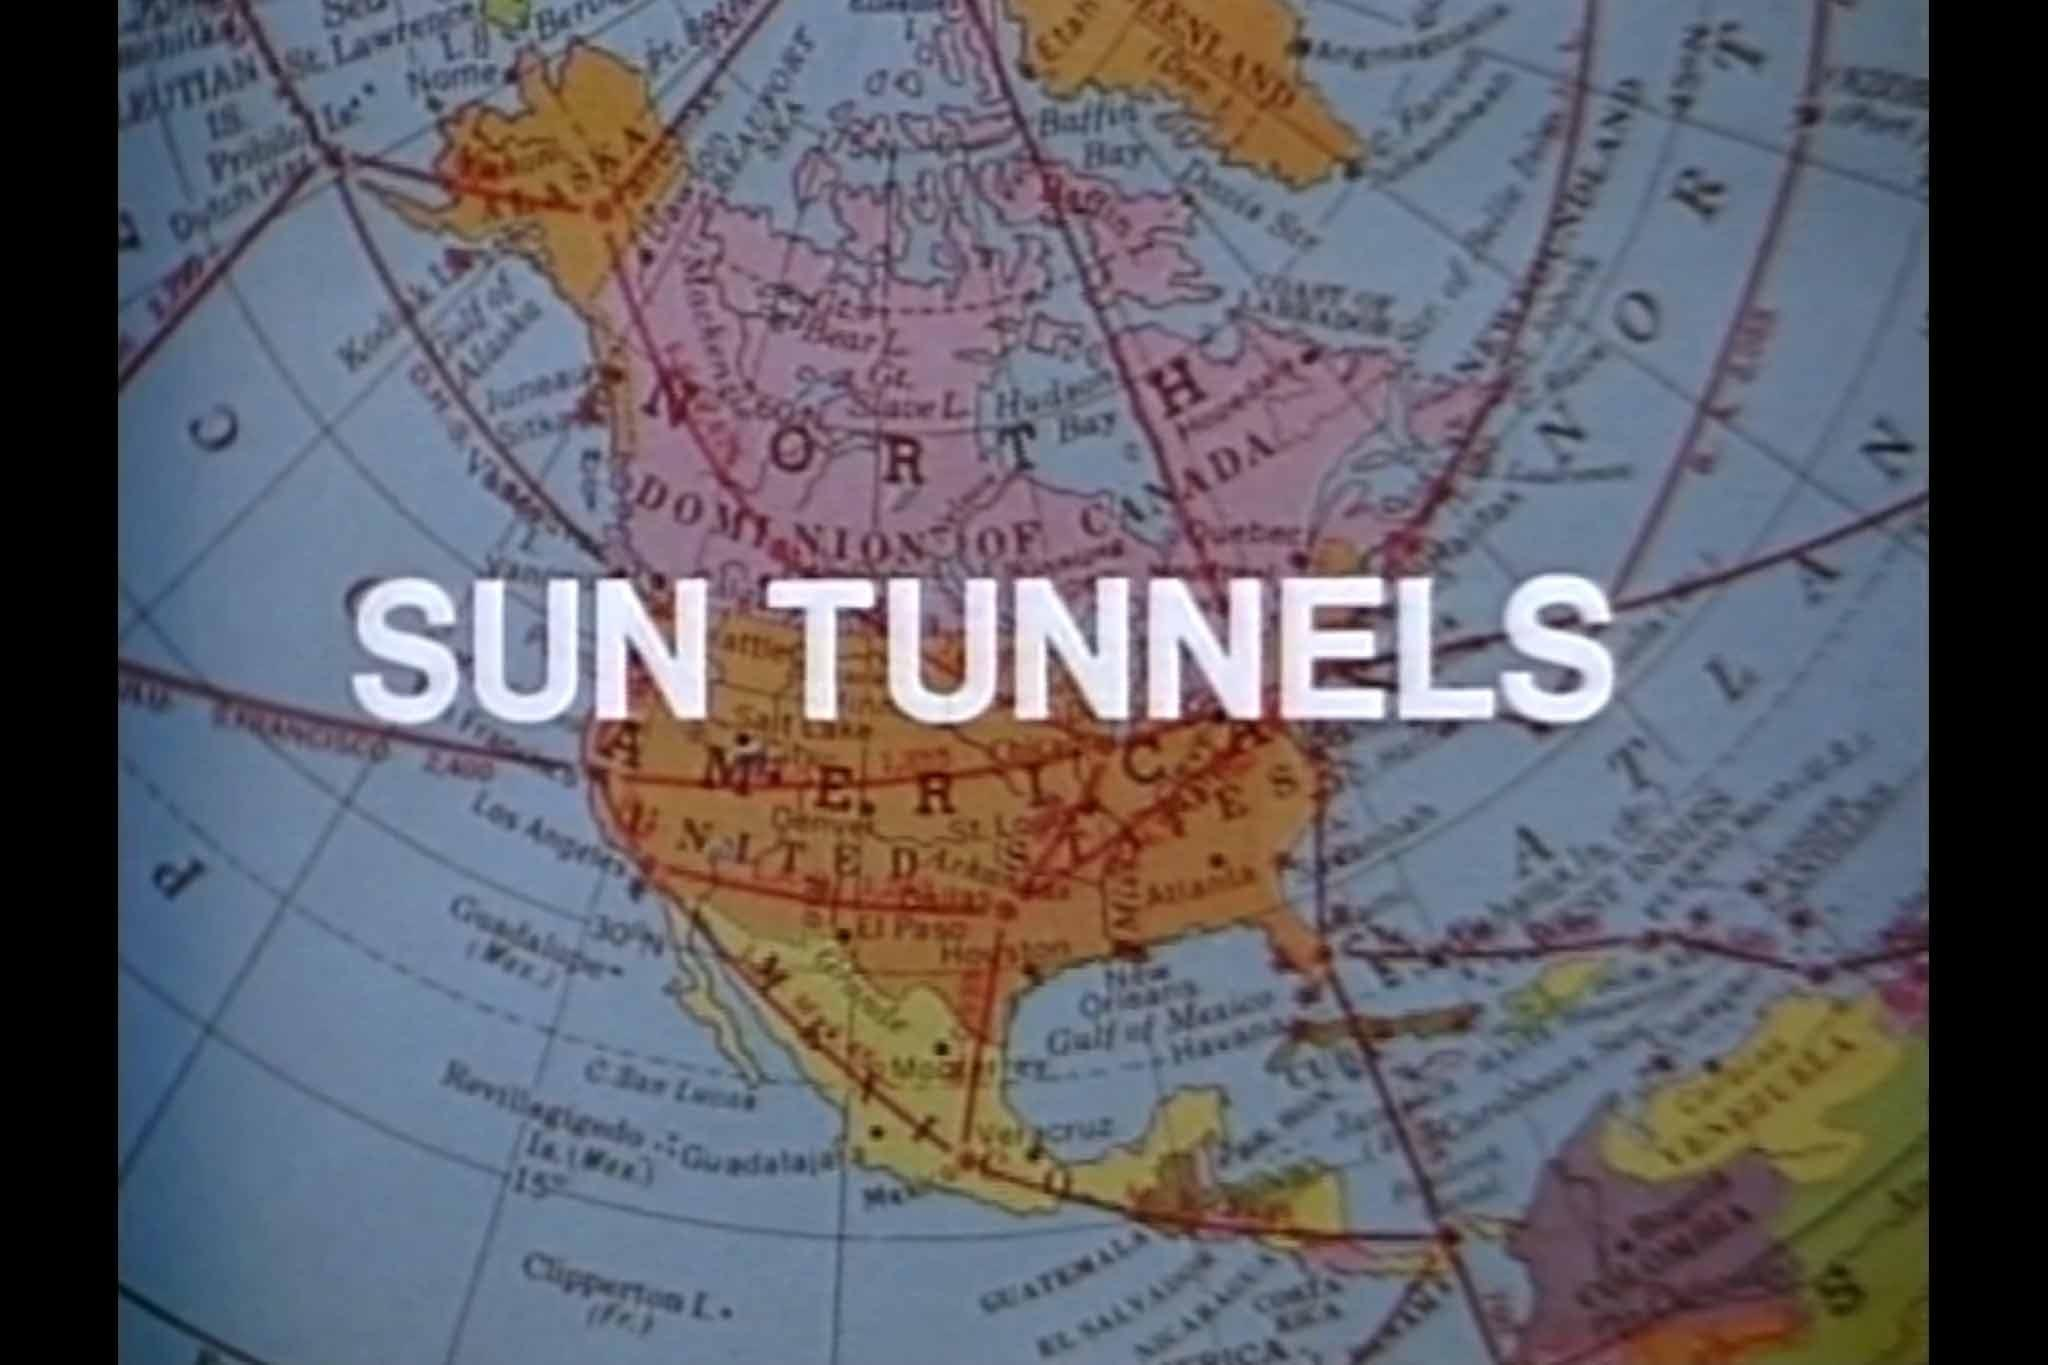 Opening shot of a map of the USA from Holt's film Sun Tunnels.